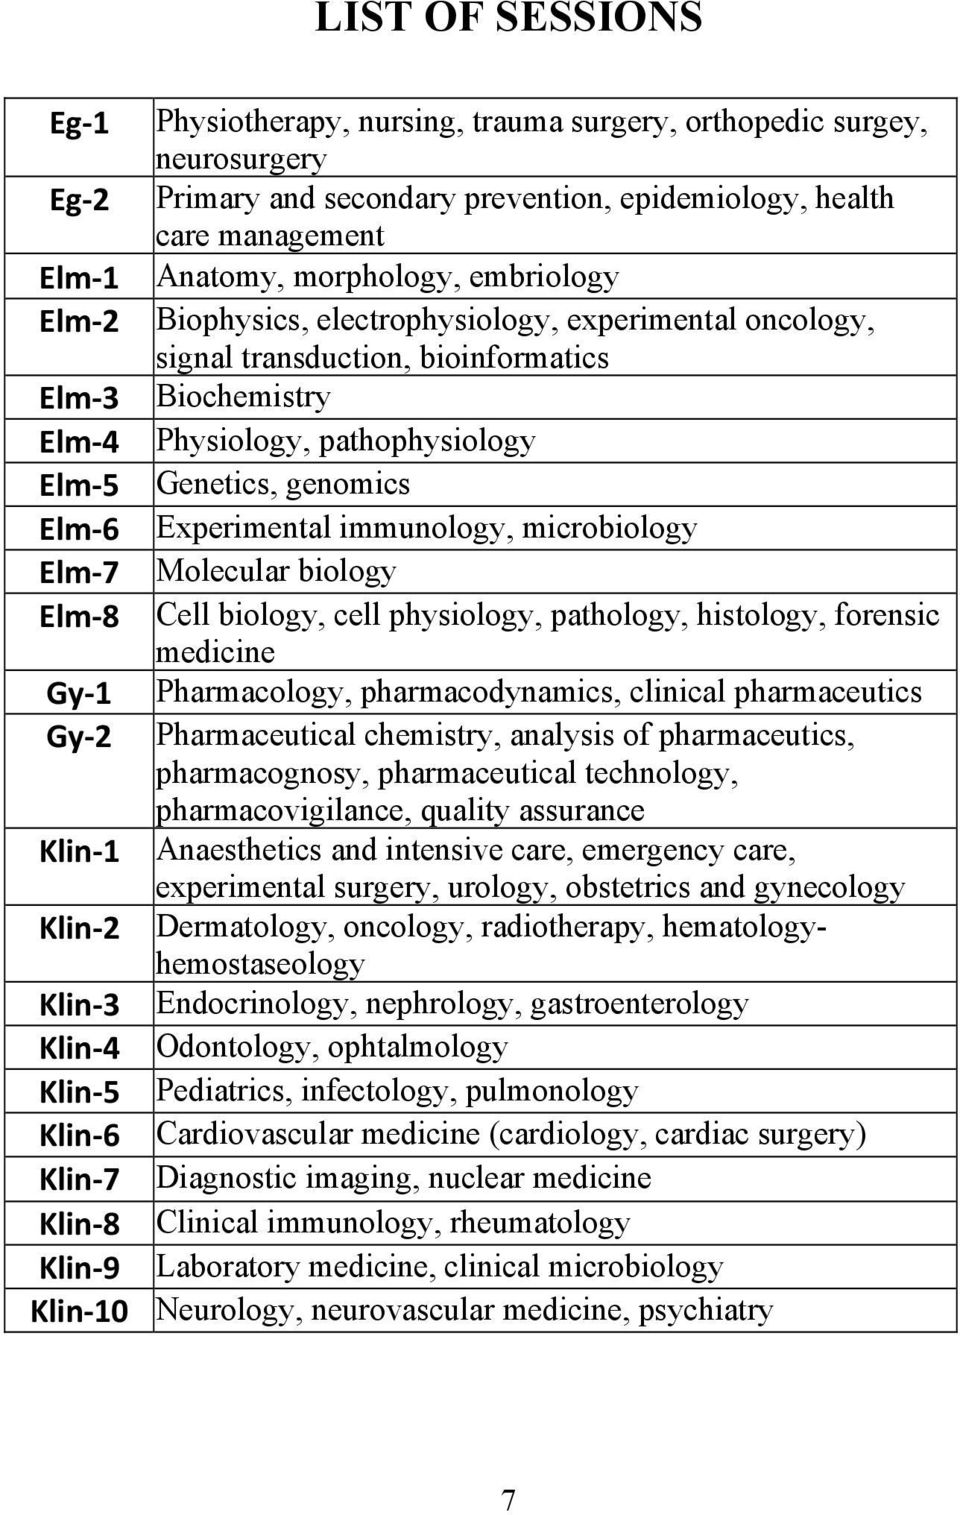 Experimental immunology, microbiology Elm 7 Molecular biology Elm 8 Cell biology, cell physiology, pathology, histology, forensic medicine Gy 1 Pharmacology, pharmacodynamics, clinical pharmaceutics